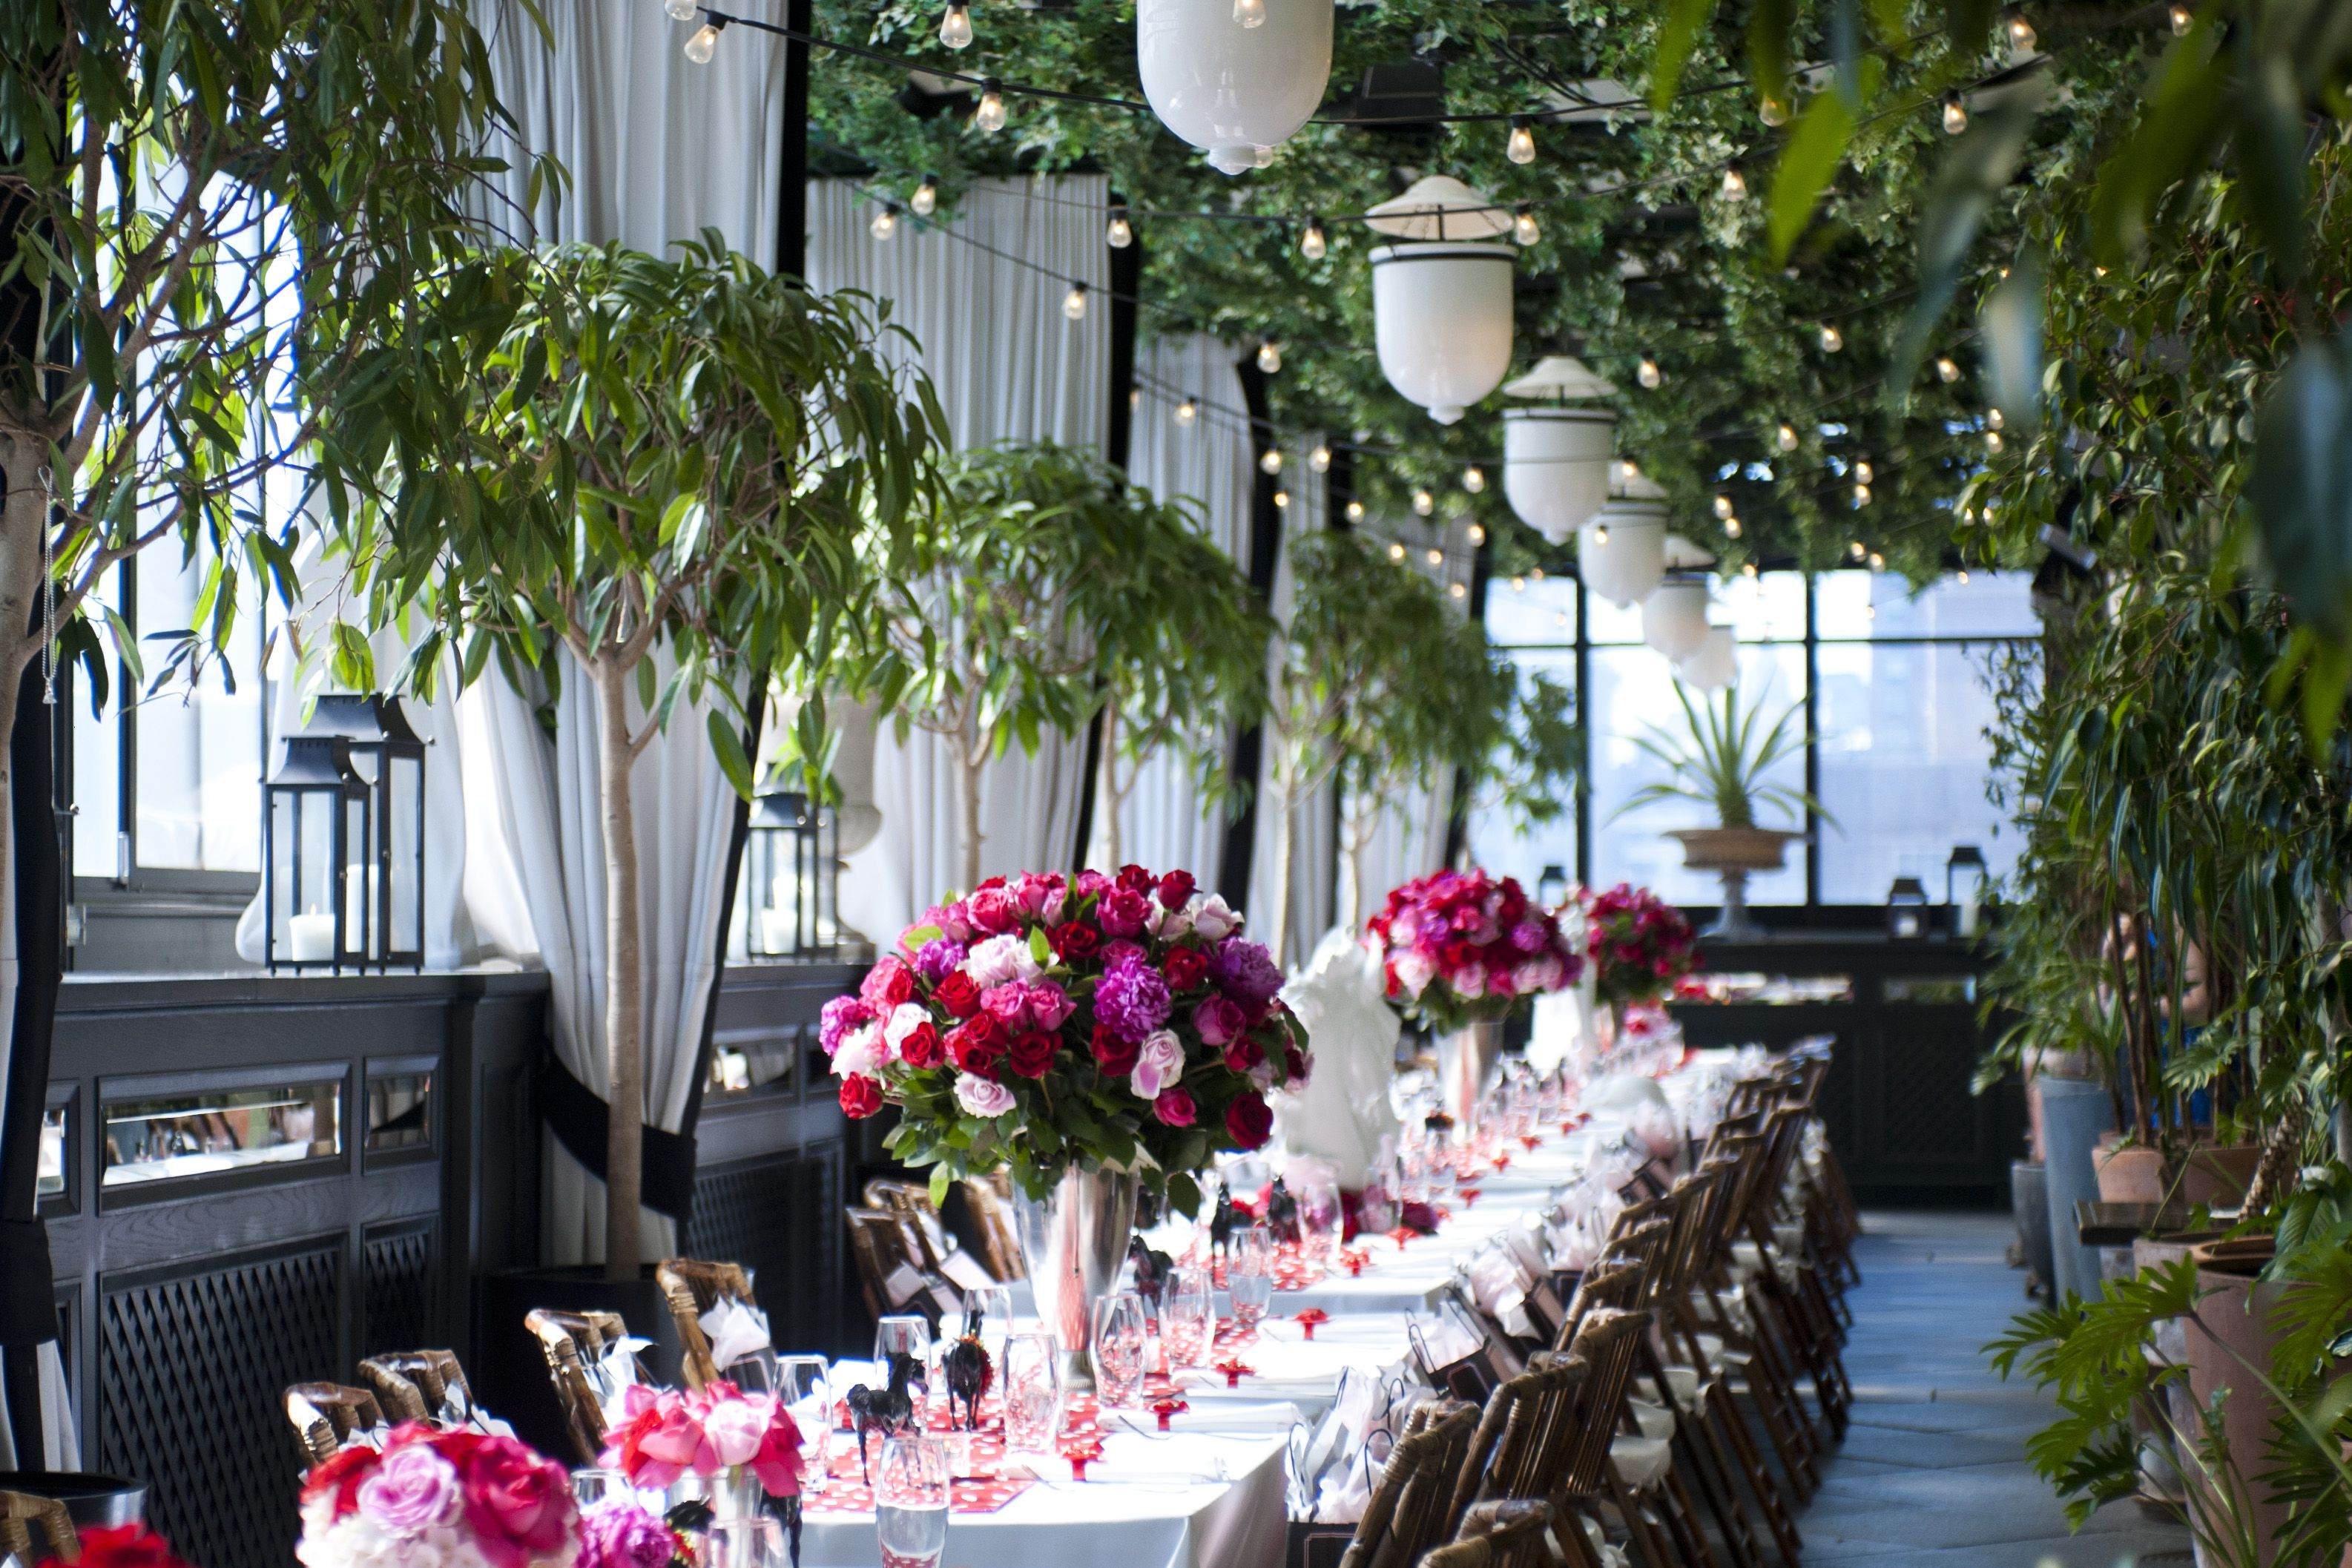 kentucky derby theme bridal shower at the gramercy park hotel nyc